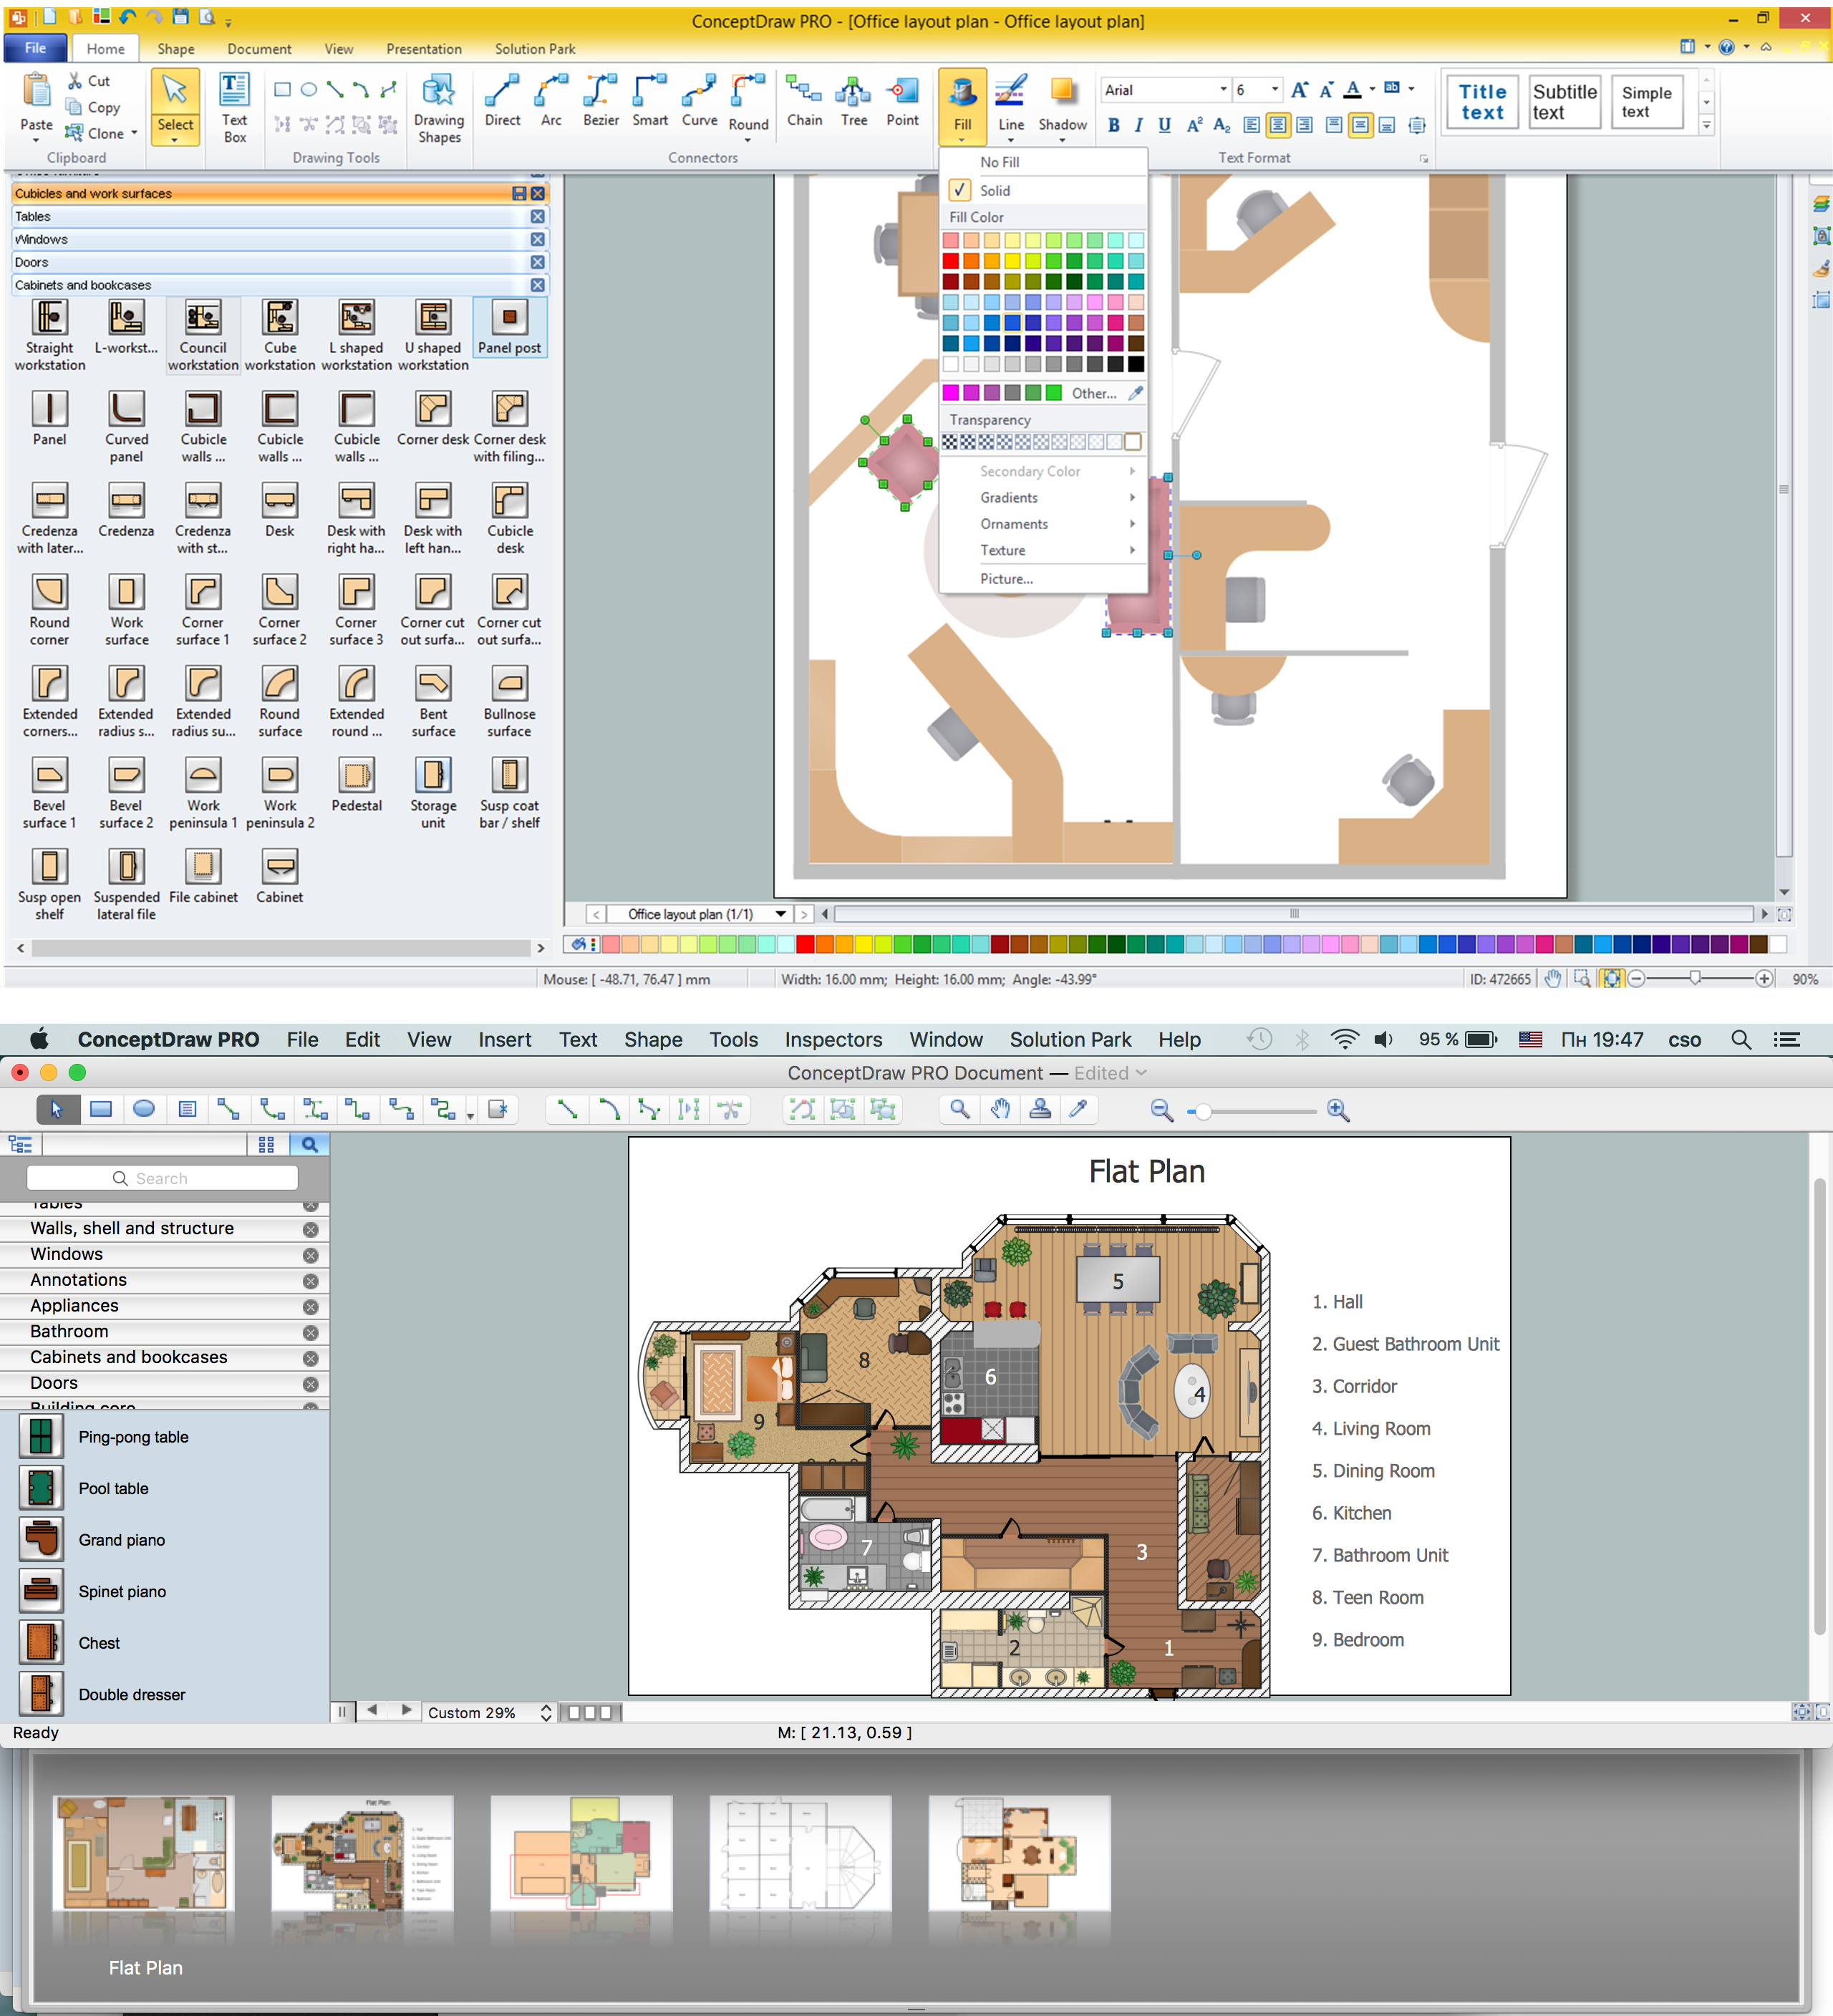 Office layout plans interior design office layout plan for House construction plans software